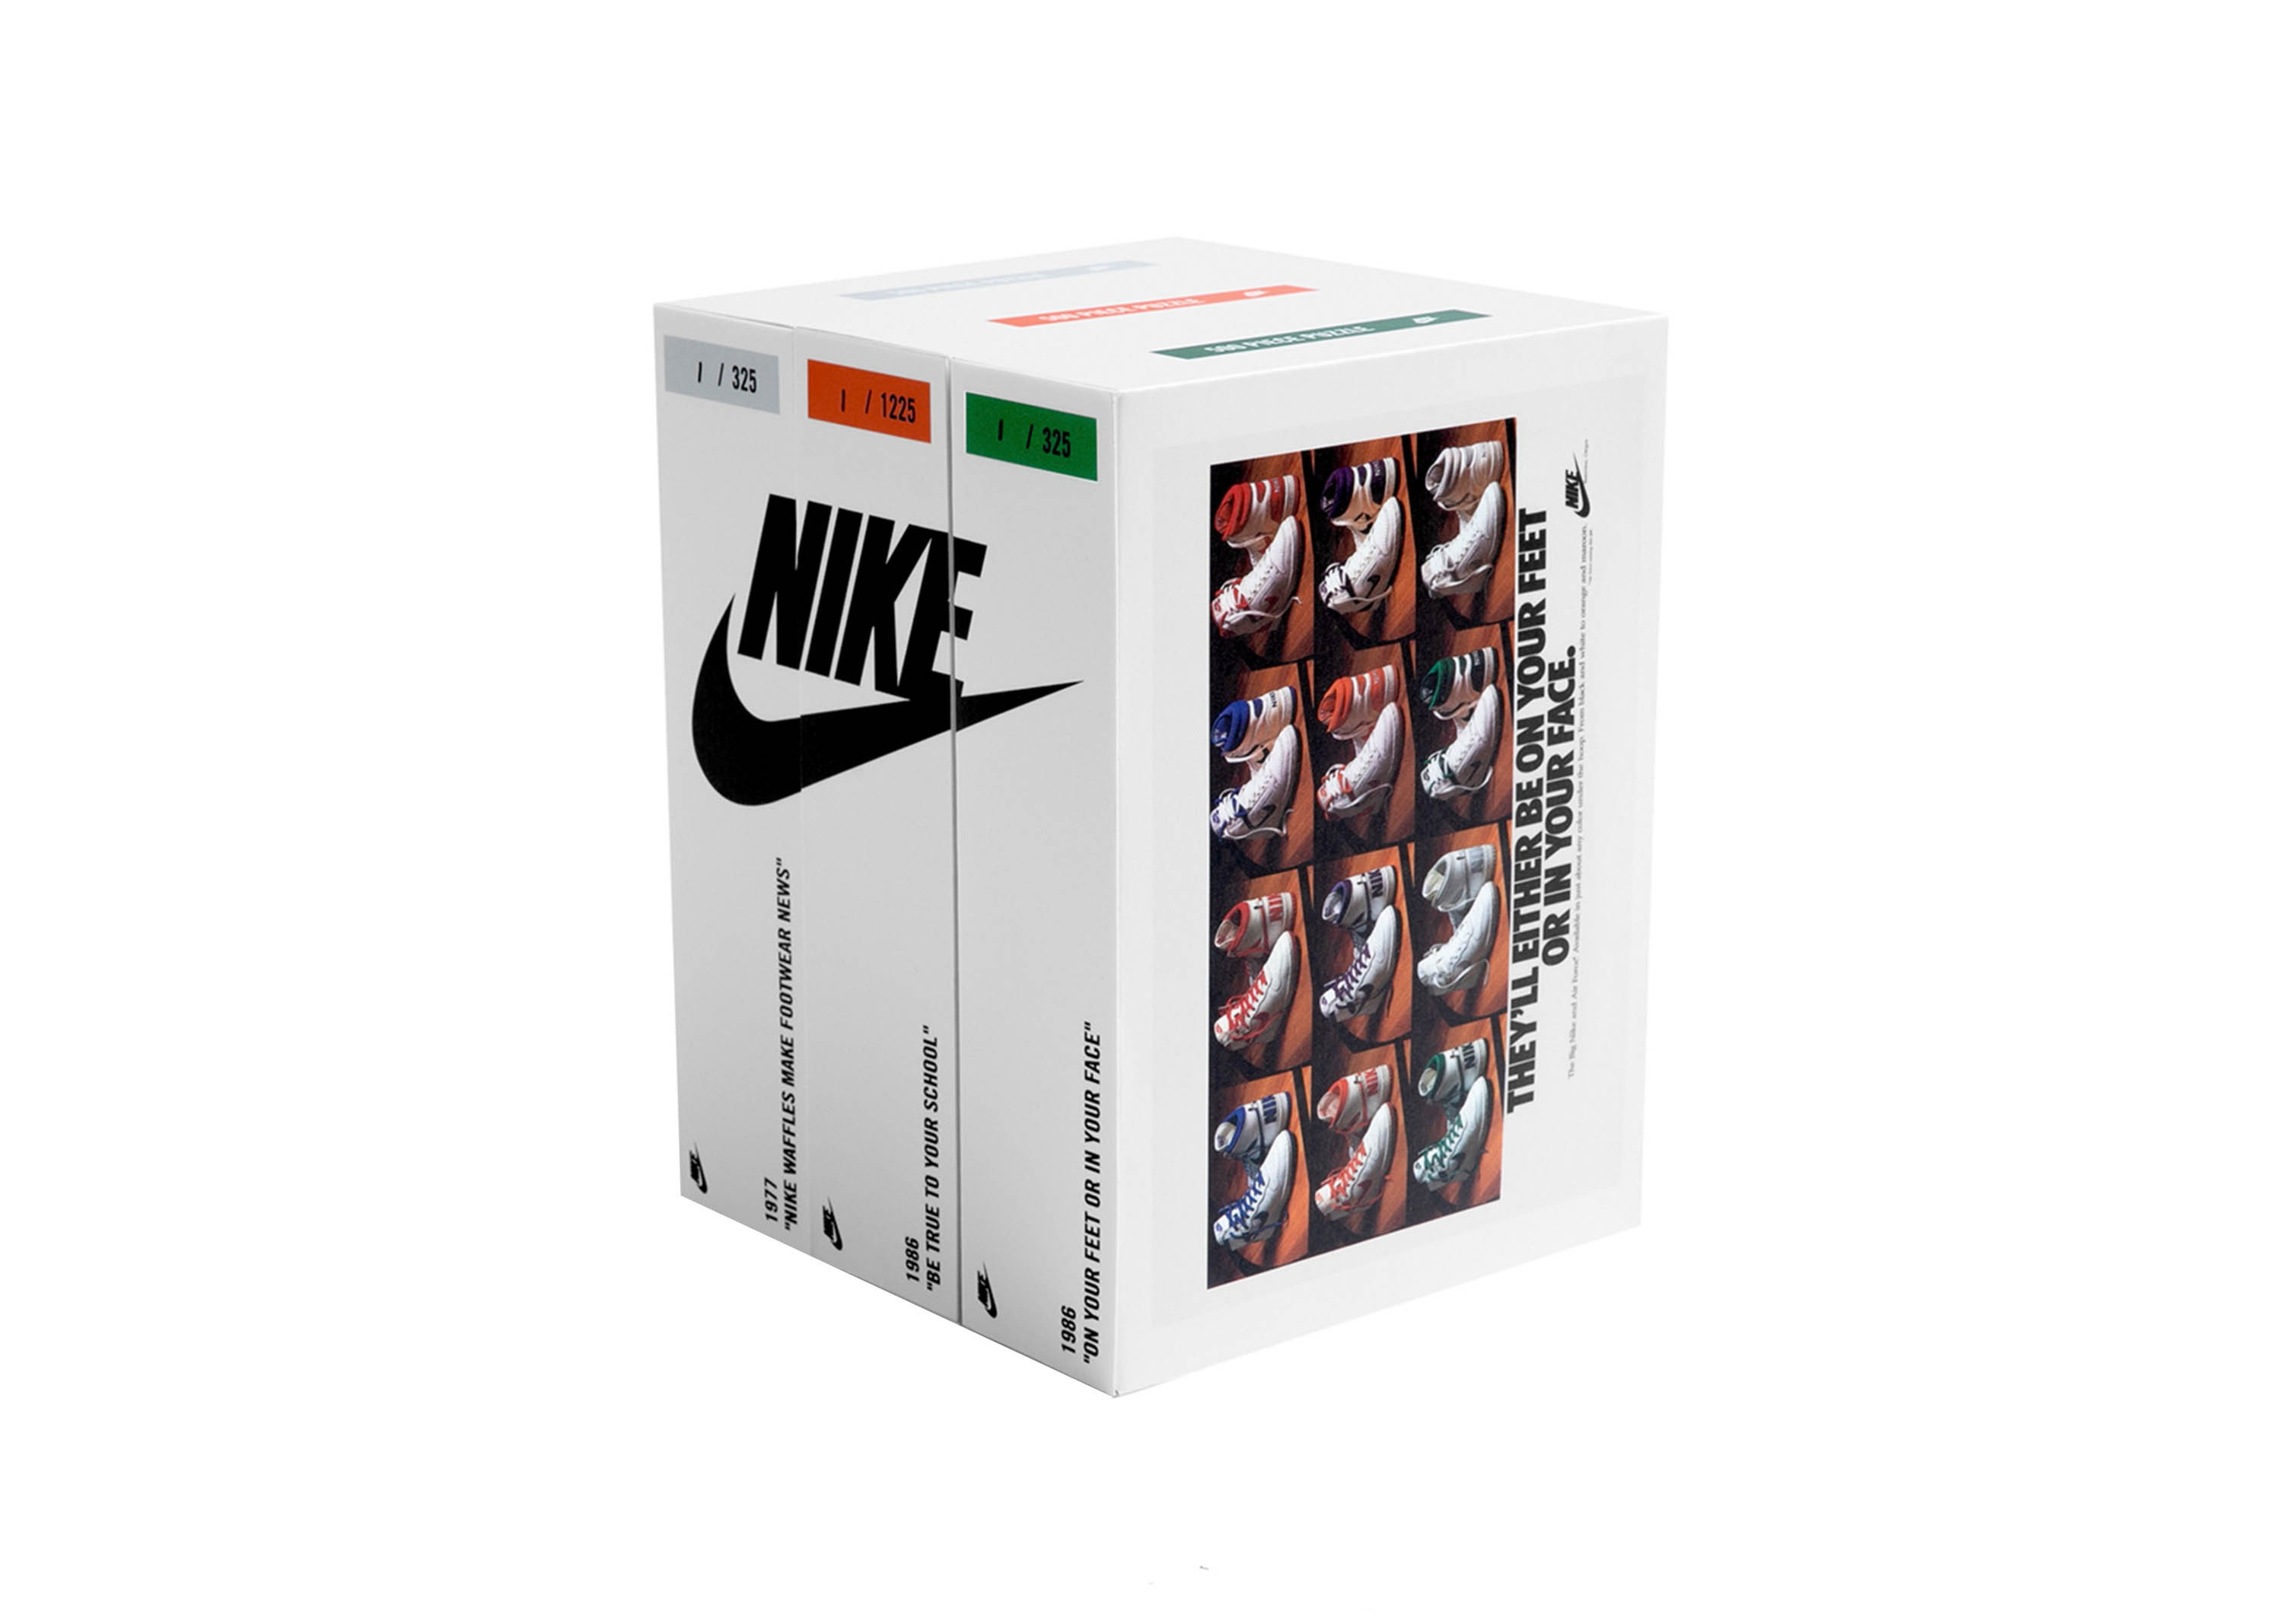 nike_puzzle_raffle_0000_Layer 1 copy 3